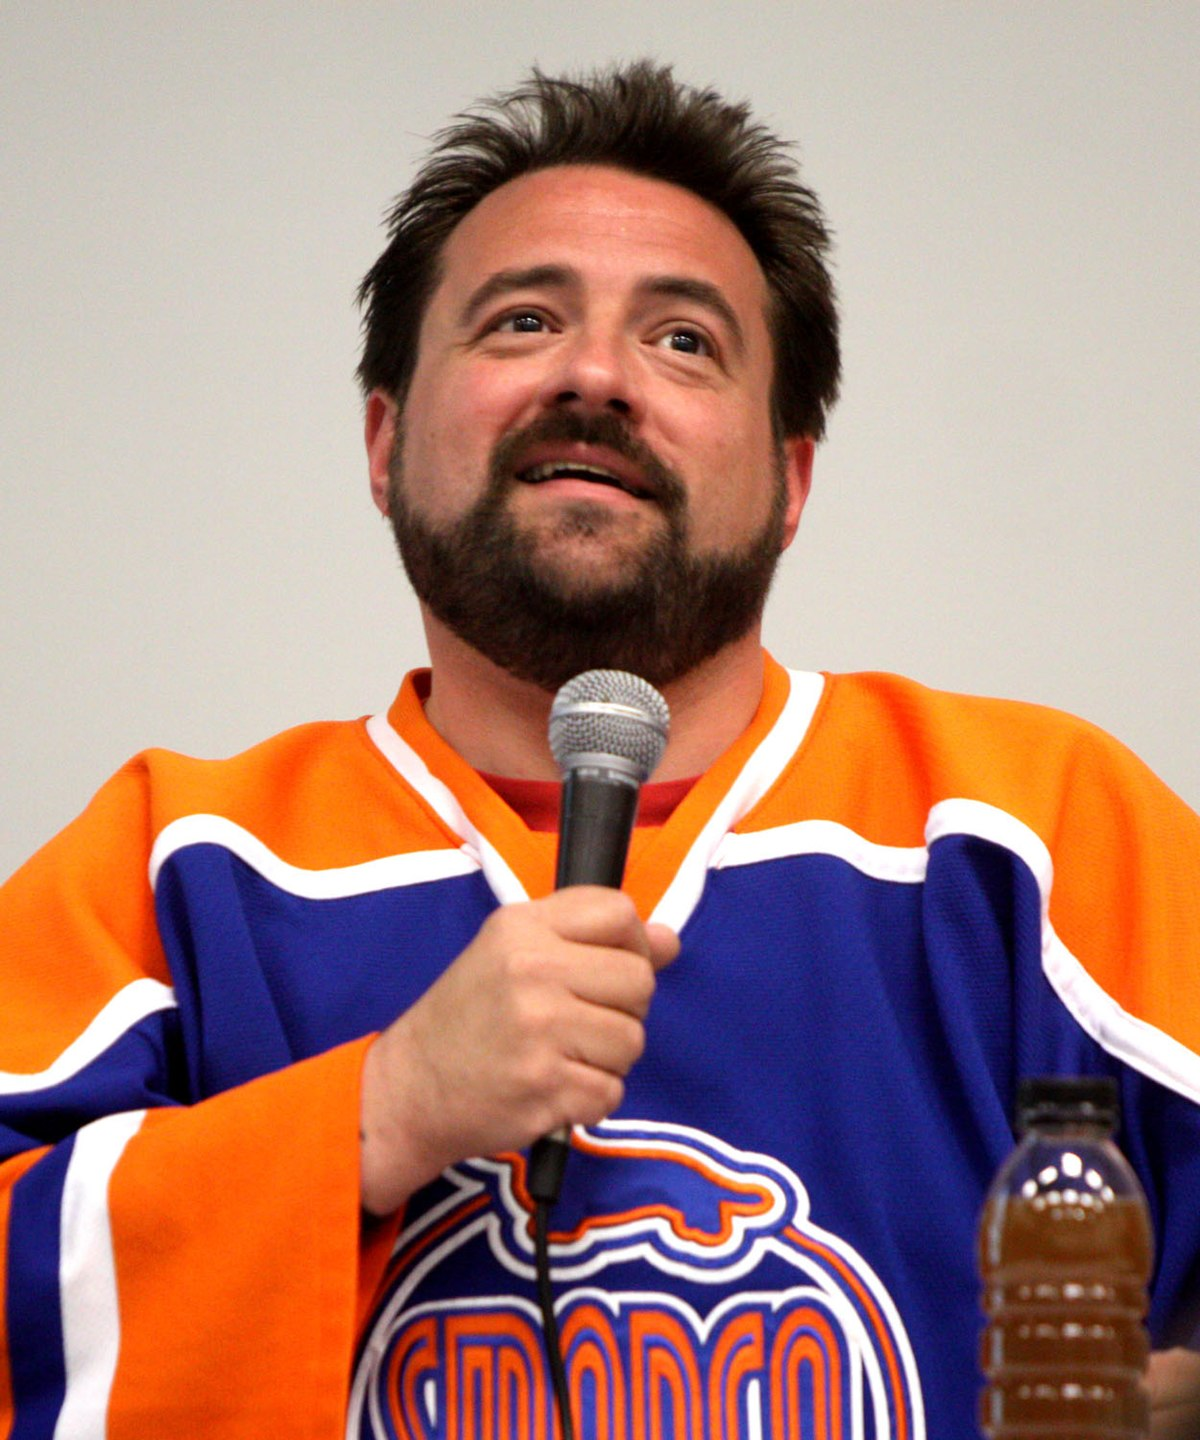 Kevin Smith filmography - Wikipedia